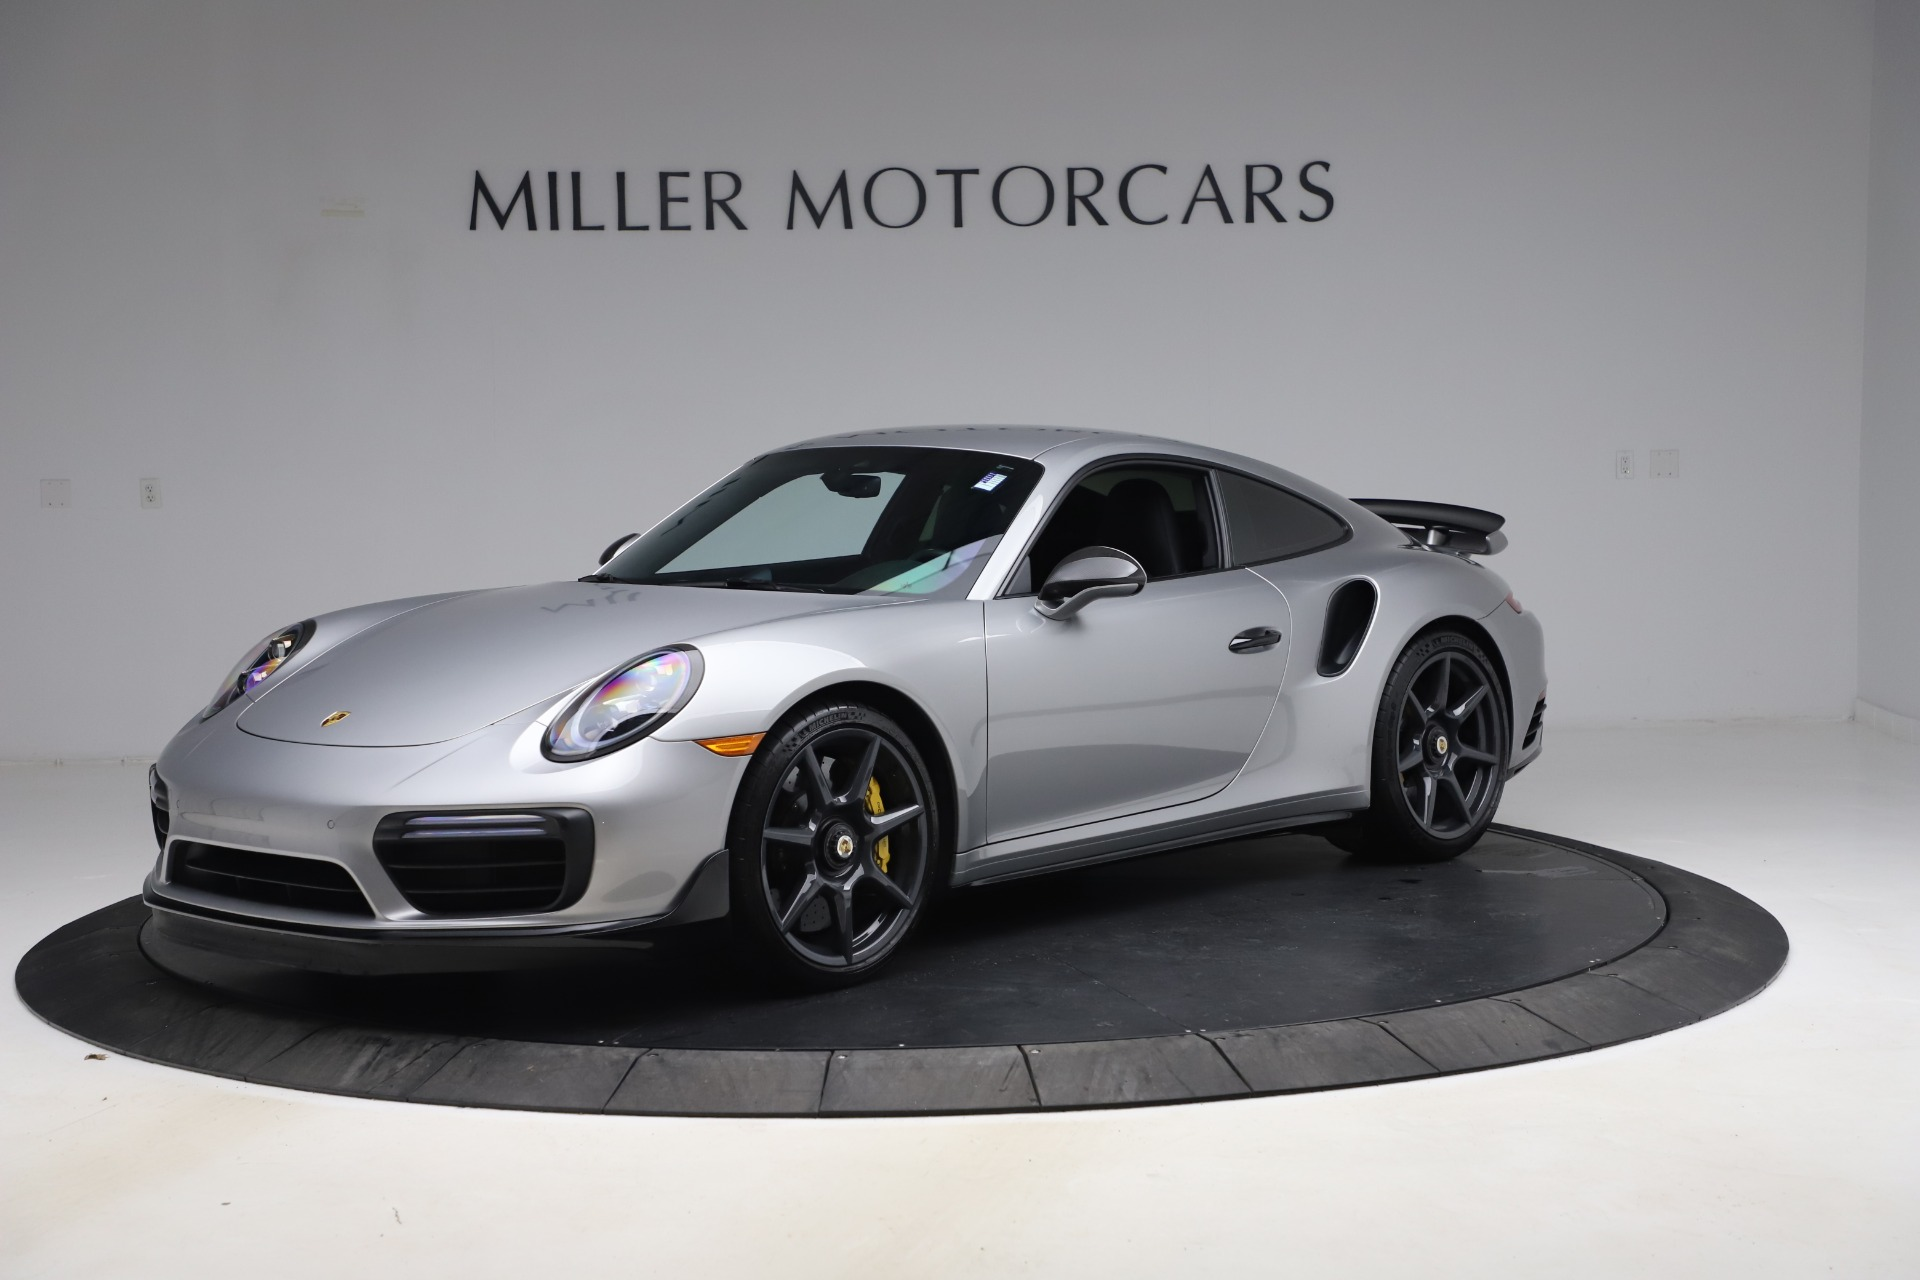 Used 2019 Porsche 911 Turbo S for sale $177,900 at Pagani of Greenwich in Greenwich CT 06830 1